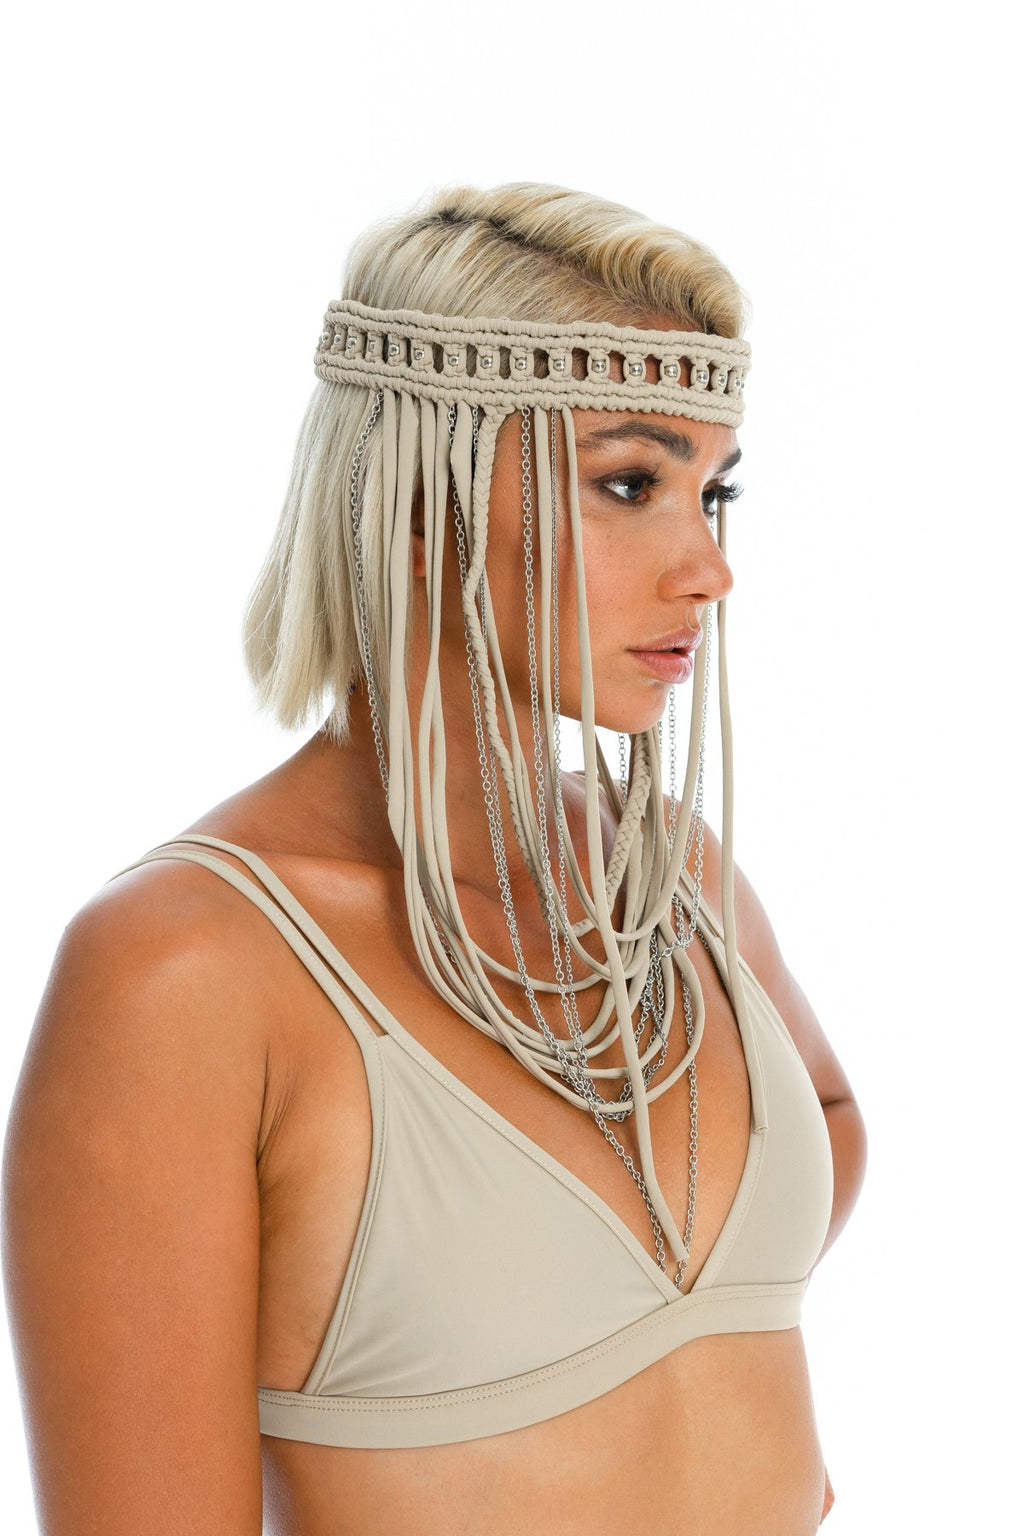 headpiece, handmade macrame boho festival headpiece - body jewellery